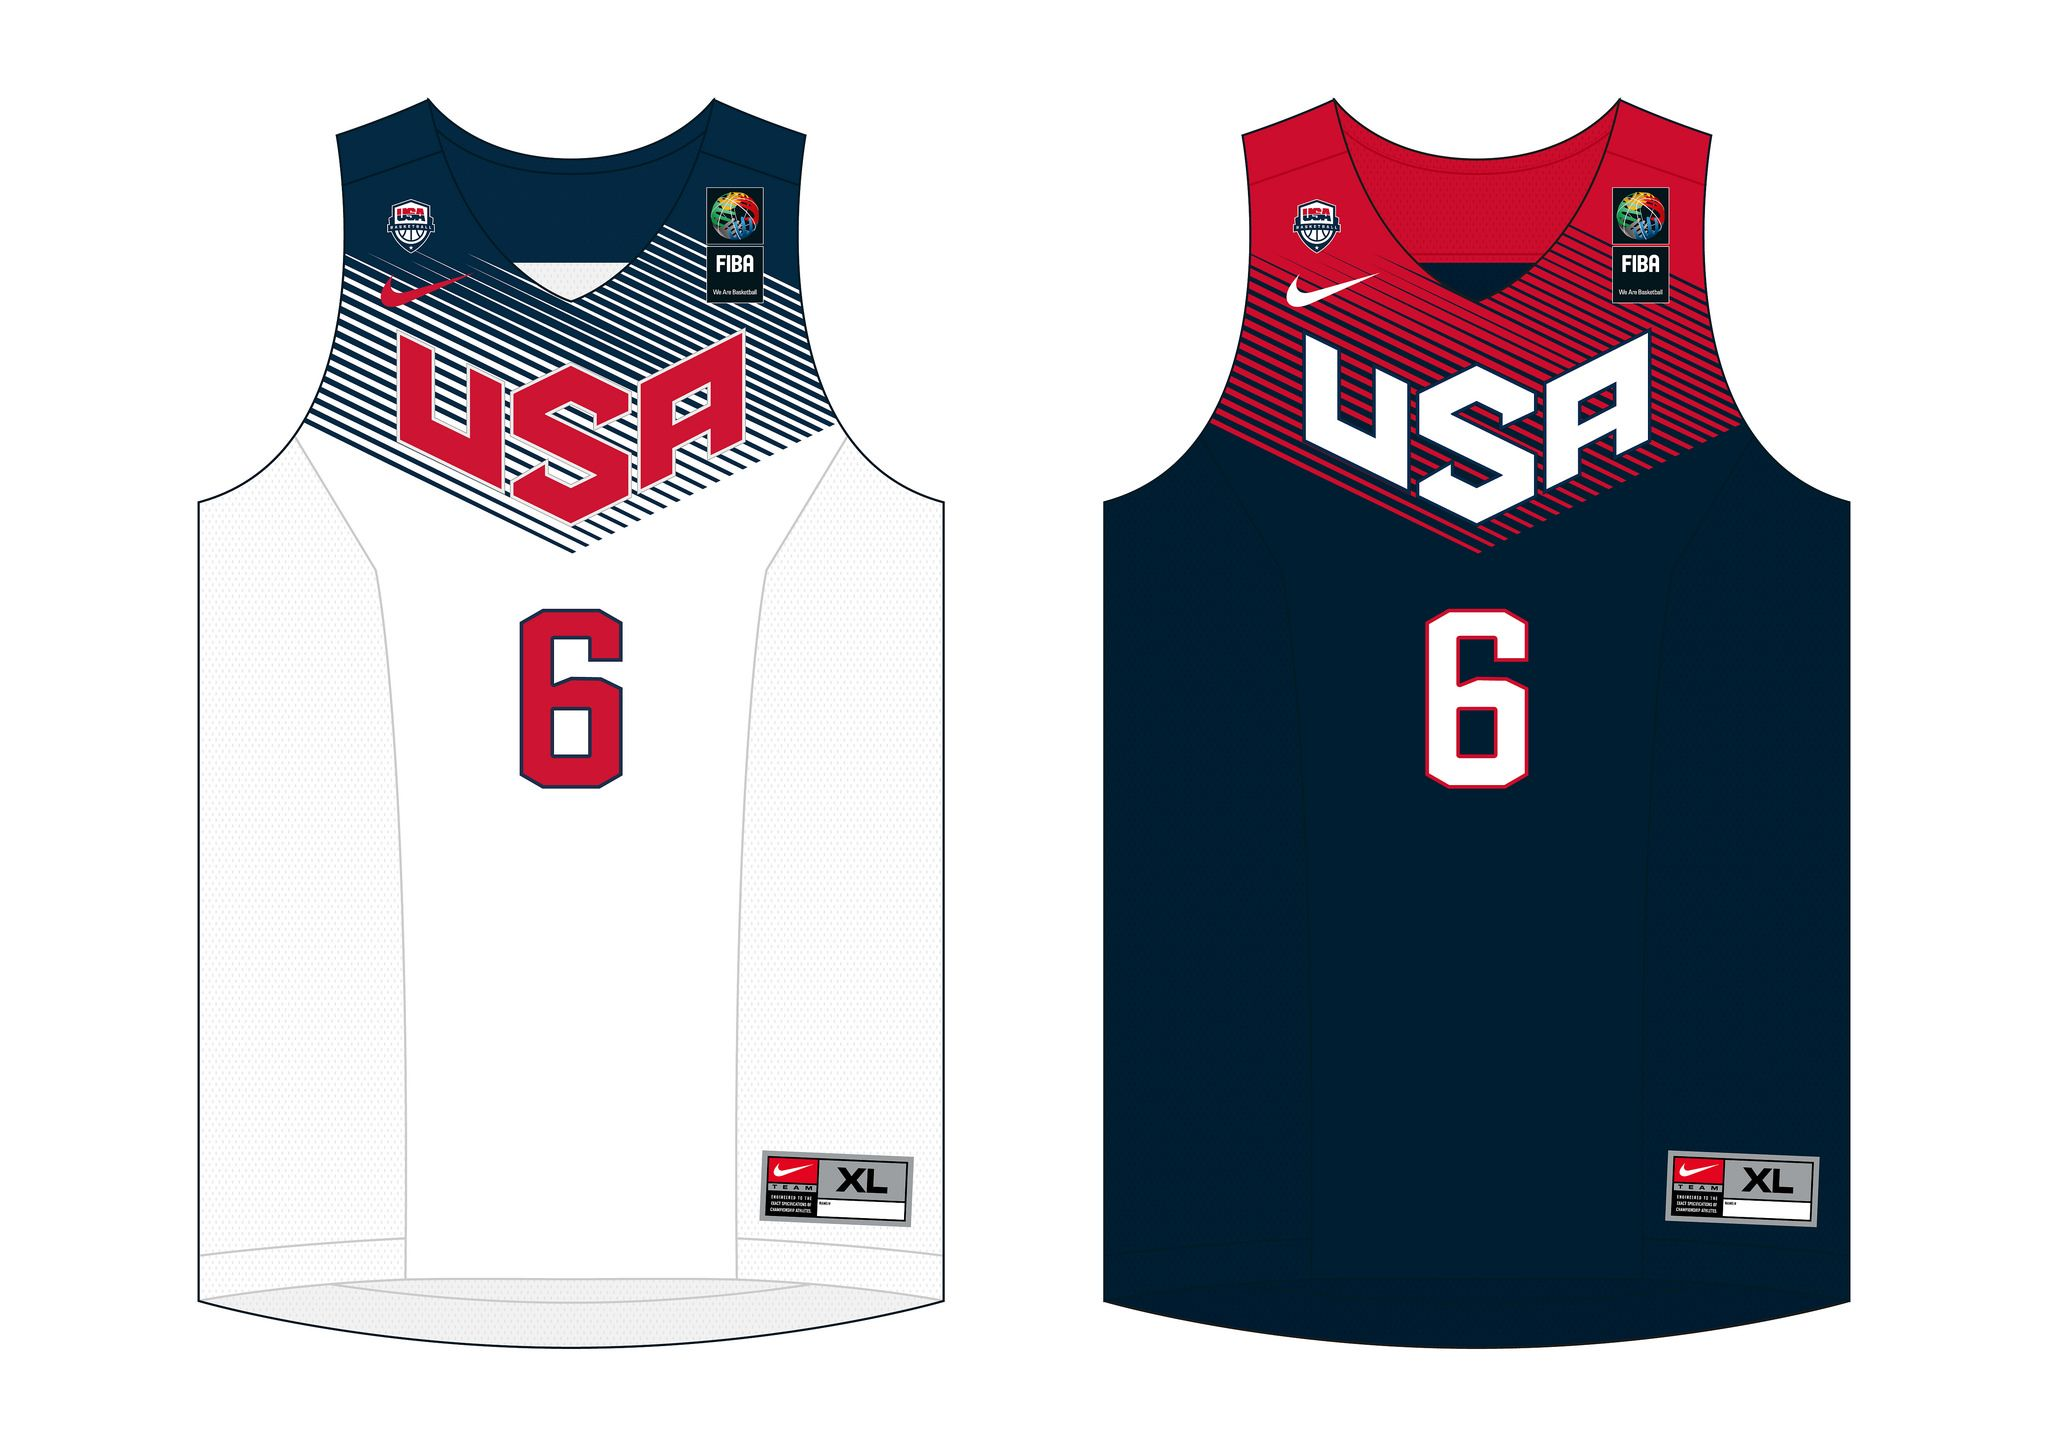 fcdf787ca USA Basketball jersey (FIBA World Championship 2014